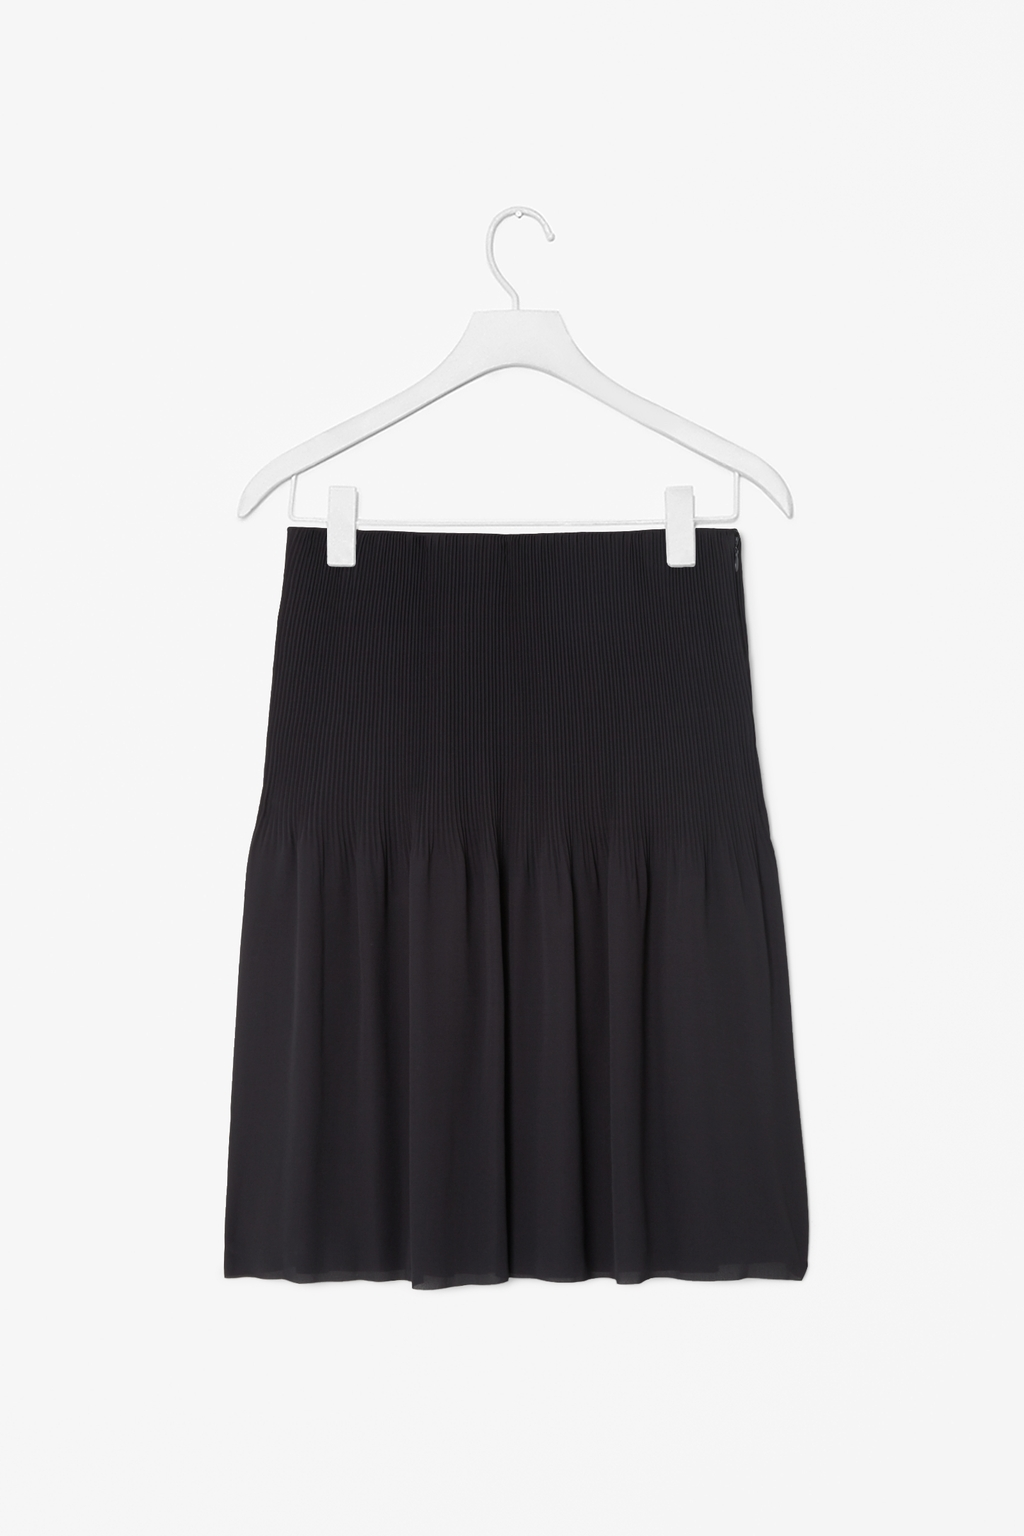 Pleated Skirt - pattern: plain; fit: body skimming; style: pleated; waist detail: elasticated waist; waist: mid/regular rise; predominant colour: black; occasions: casual, evening, work, occasion, creative work; length: on the knee; fibres: polyester/polyamide - 100%; hip detail: soft pleats at hip/draping at hip/flared at hip; pattern type: fabric; texture group: woven light midweight; season: s/s 2014